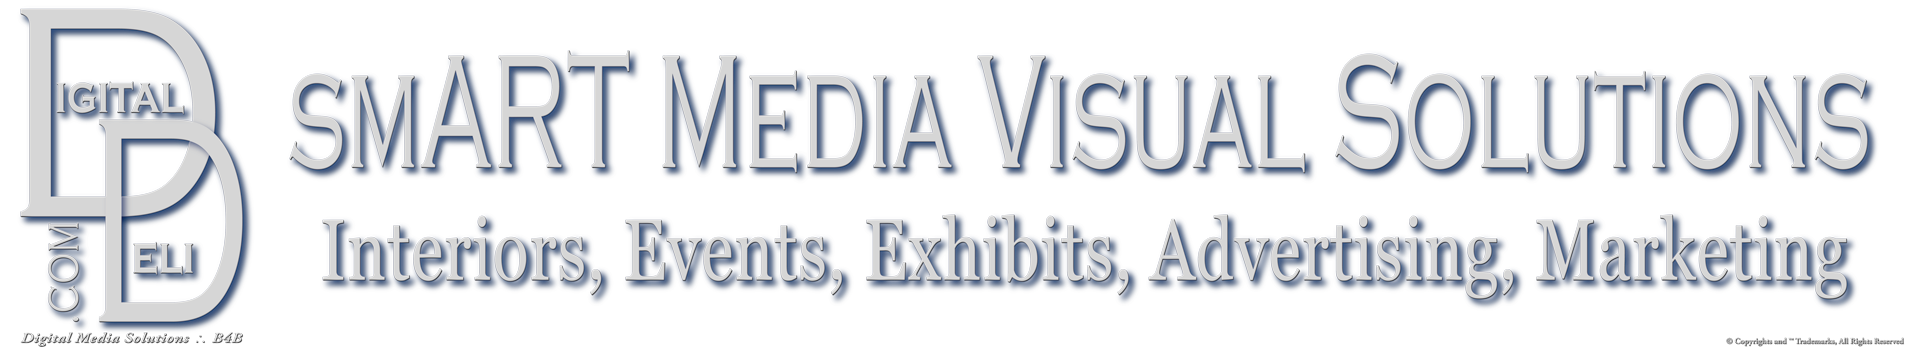 smART Media Visual Solutions™